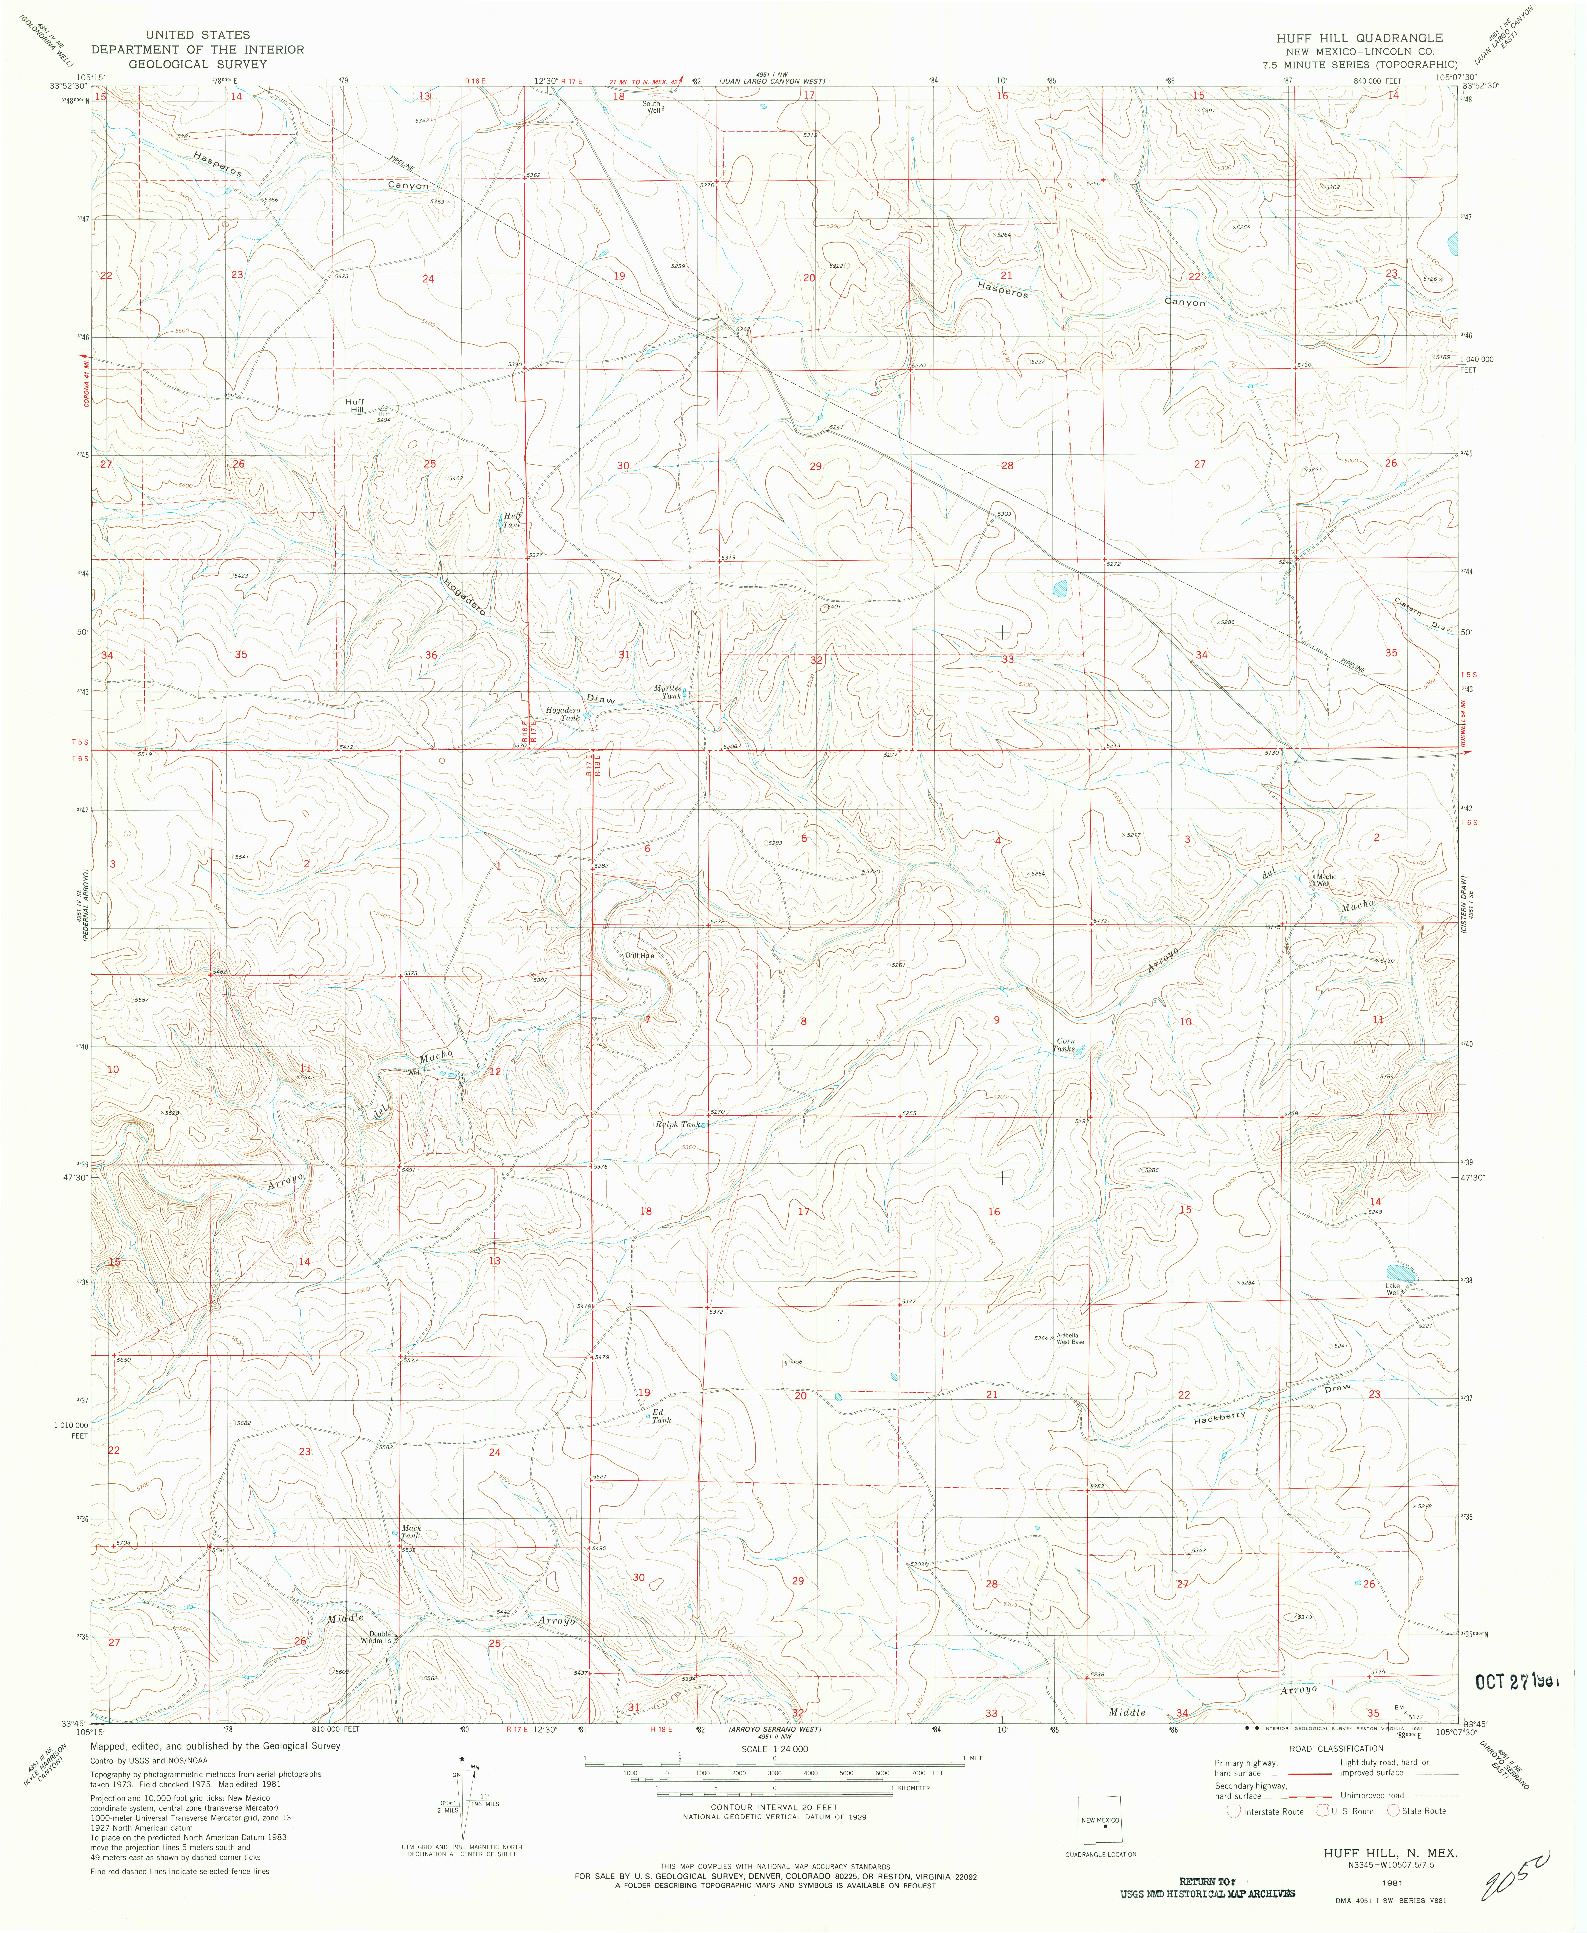 USGS 1:24000-SCALE QUADRANGLE FOR HUFF HILL, NM 1981